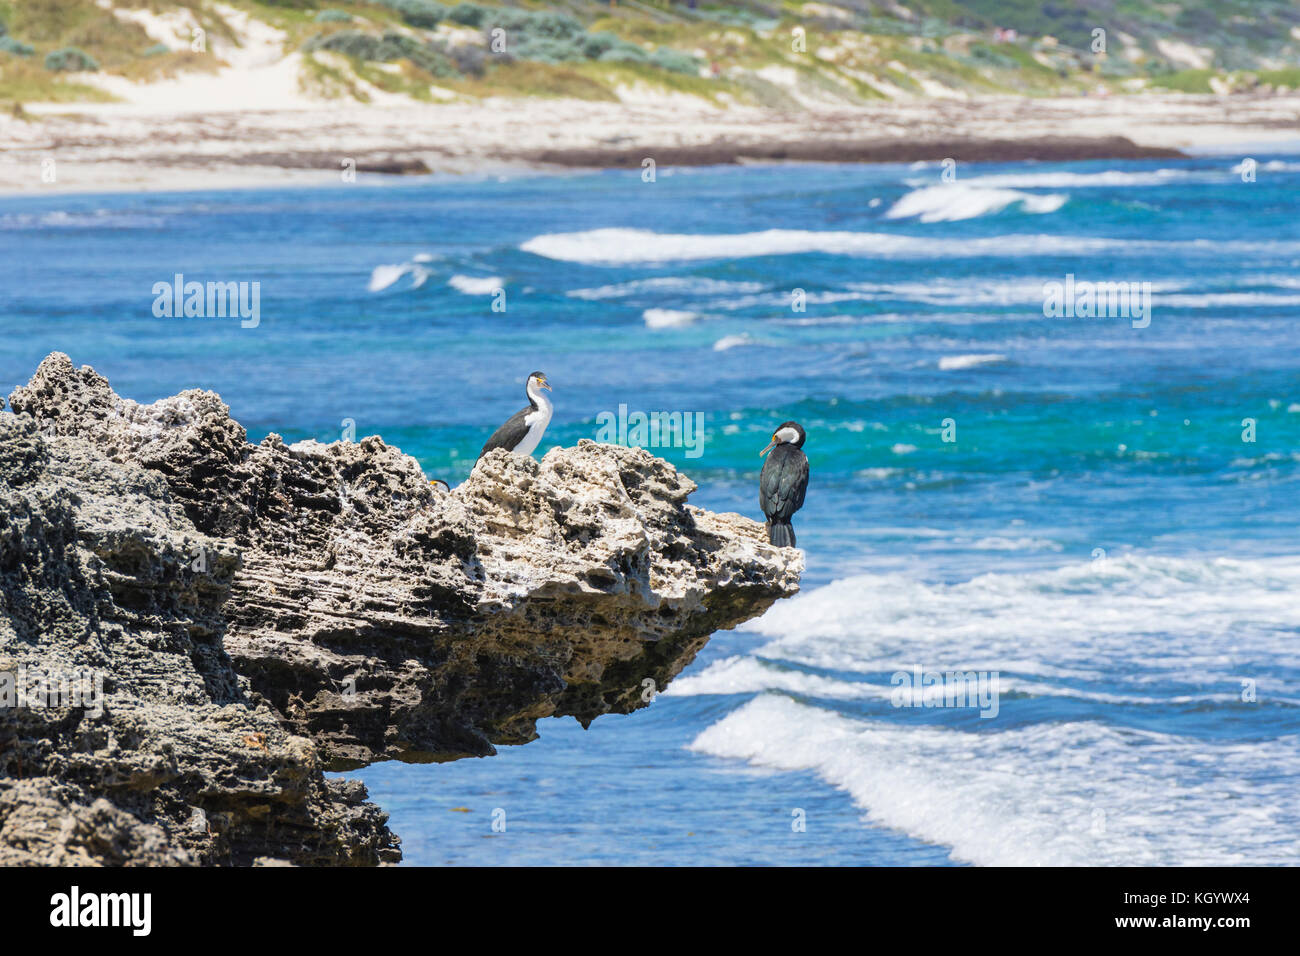 Australian Pied Cormorants perched on a limestone outcrop over the Indian Ocean, Cottesloe, Perth, Western Australia - Stock Image